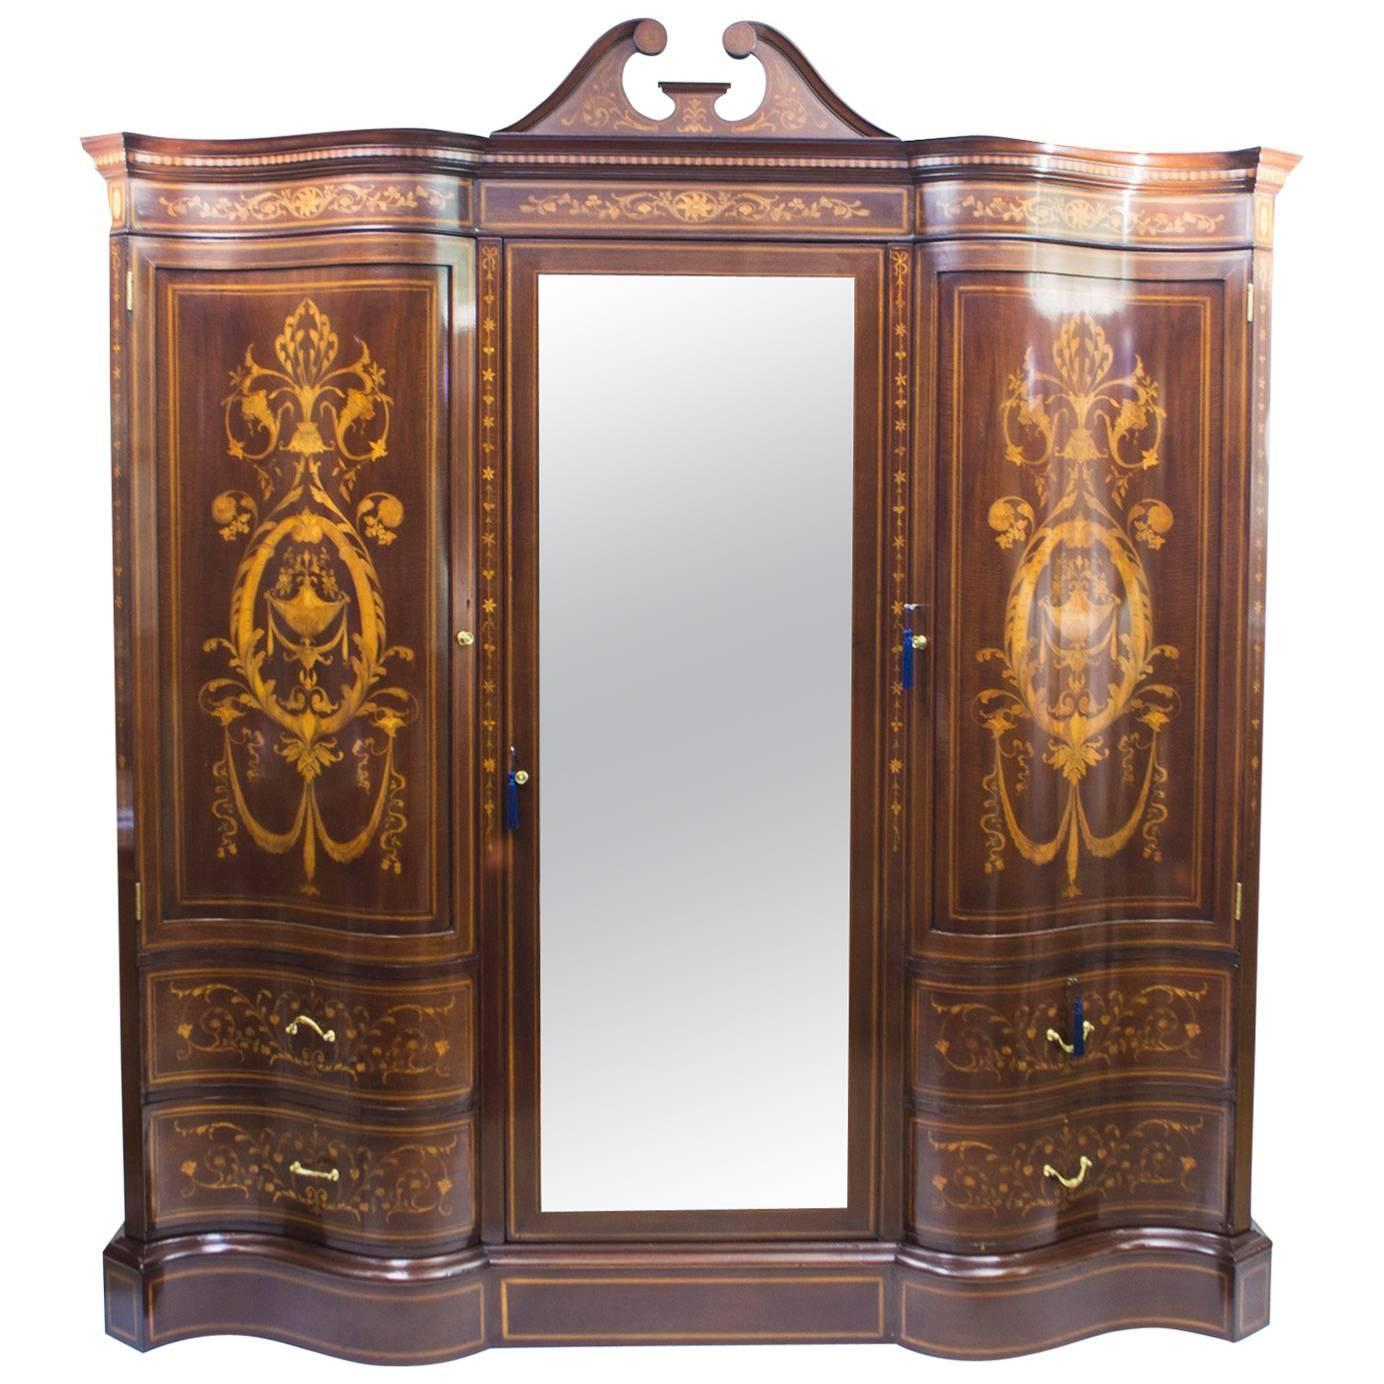 draincare white wardrobe armoires antique wardrobes pictures of luxury diyiz hardware armoire us elegant and mahogany